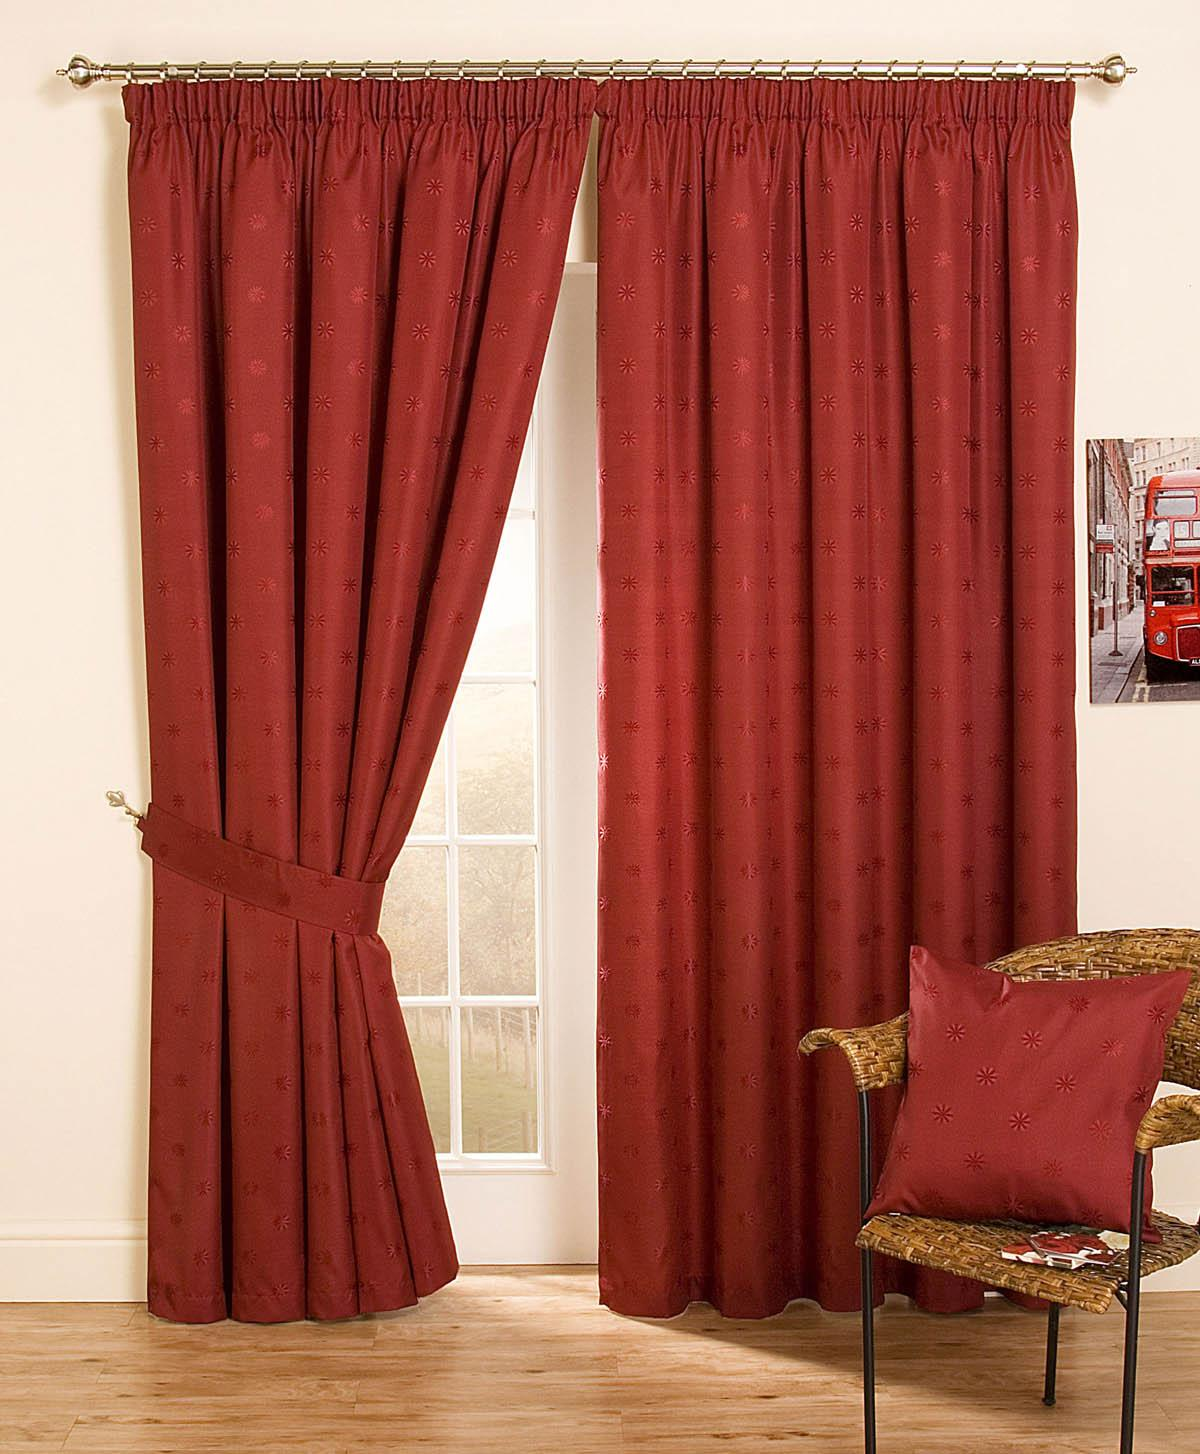 Vancouver Ready Made Lined Curtain Red Free UK Delivery Terrys - Ready made curtains red